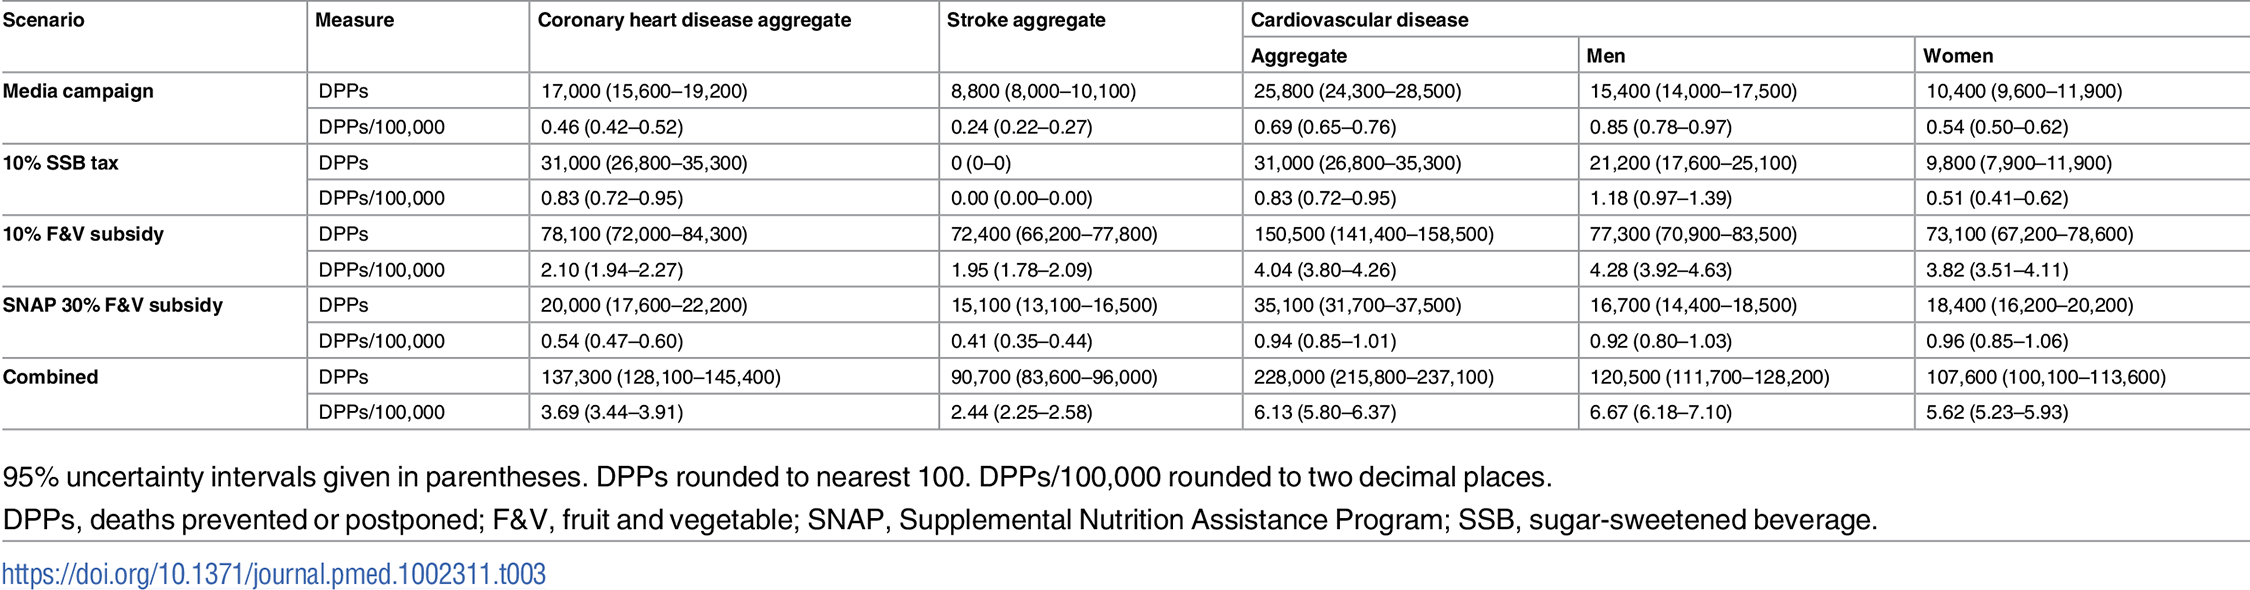 Total cumulative cardiovascular disease deaths prevented or postponed from 2015 to 2030 under each policy modelled, stratified by cardiovascular disease subtype and sex.